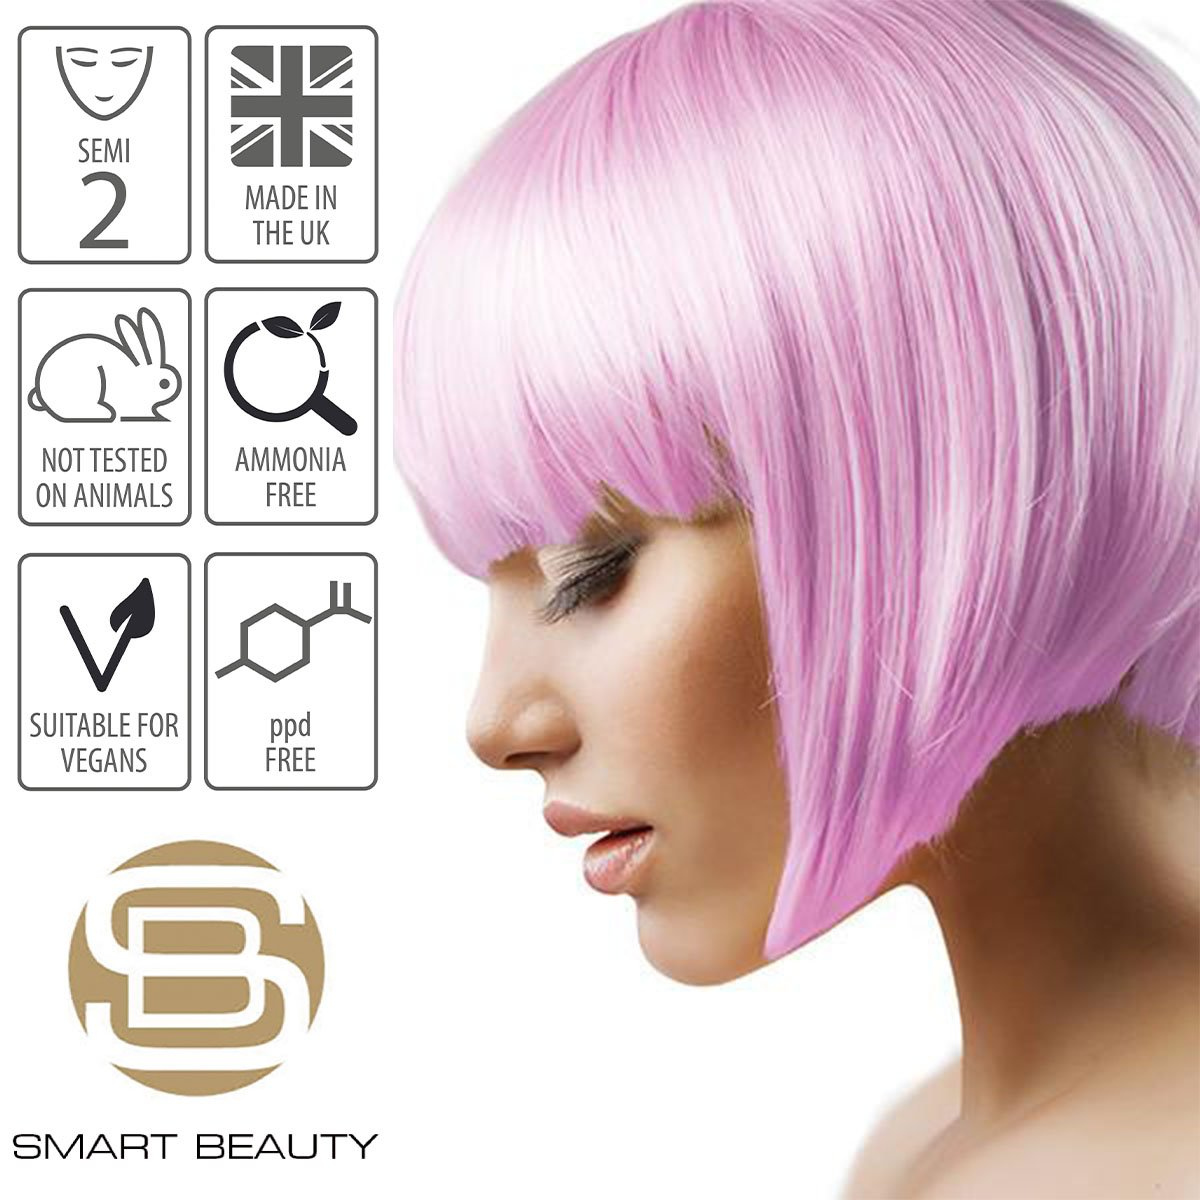 <strong><h2>Pink Hair Dye Collection</h2></strong>Adopt a trendy look by dyeing your hair rose gold, vibrant pink or millennial pastel pink.